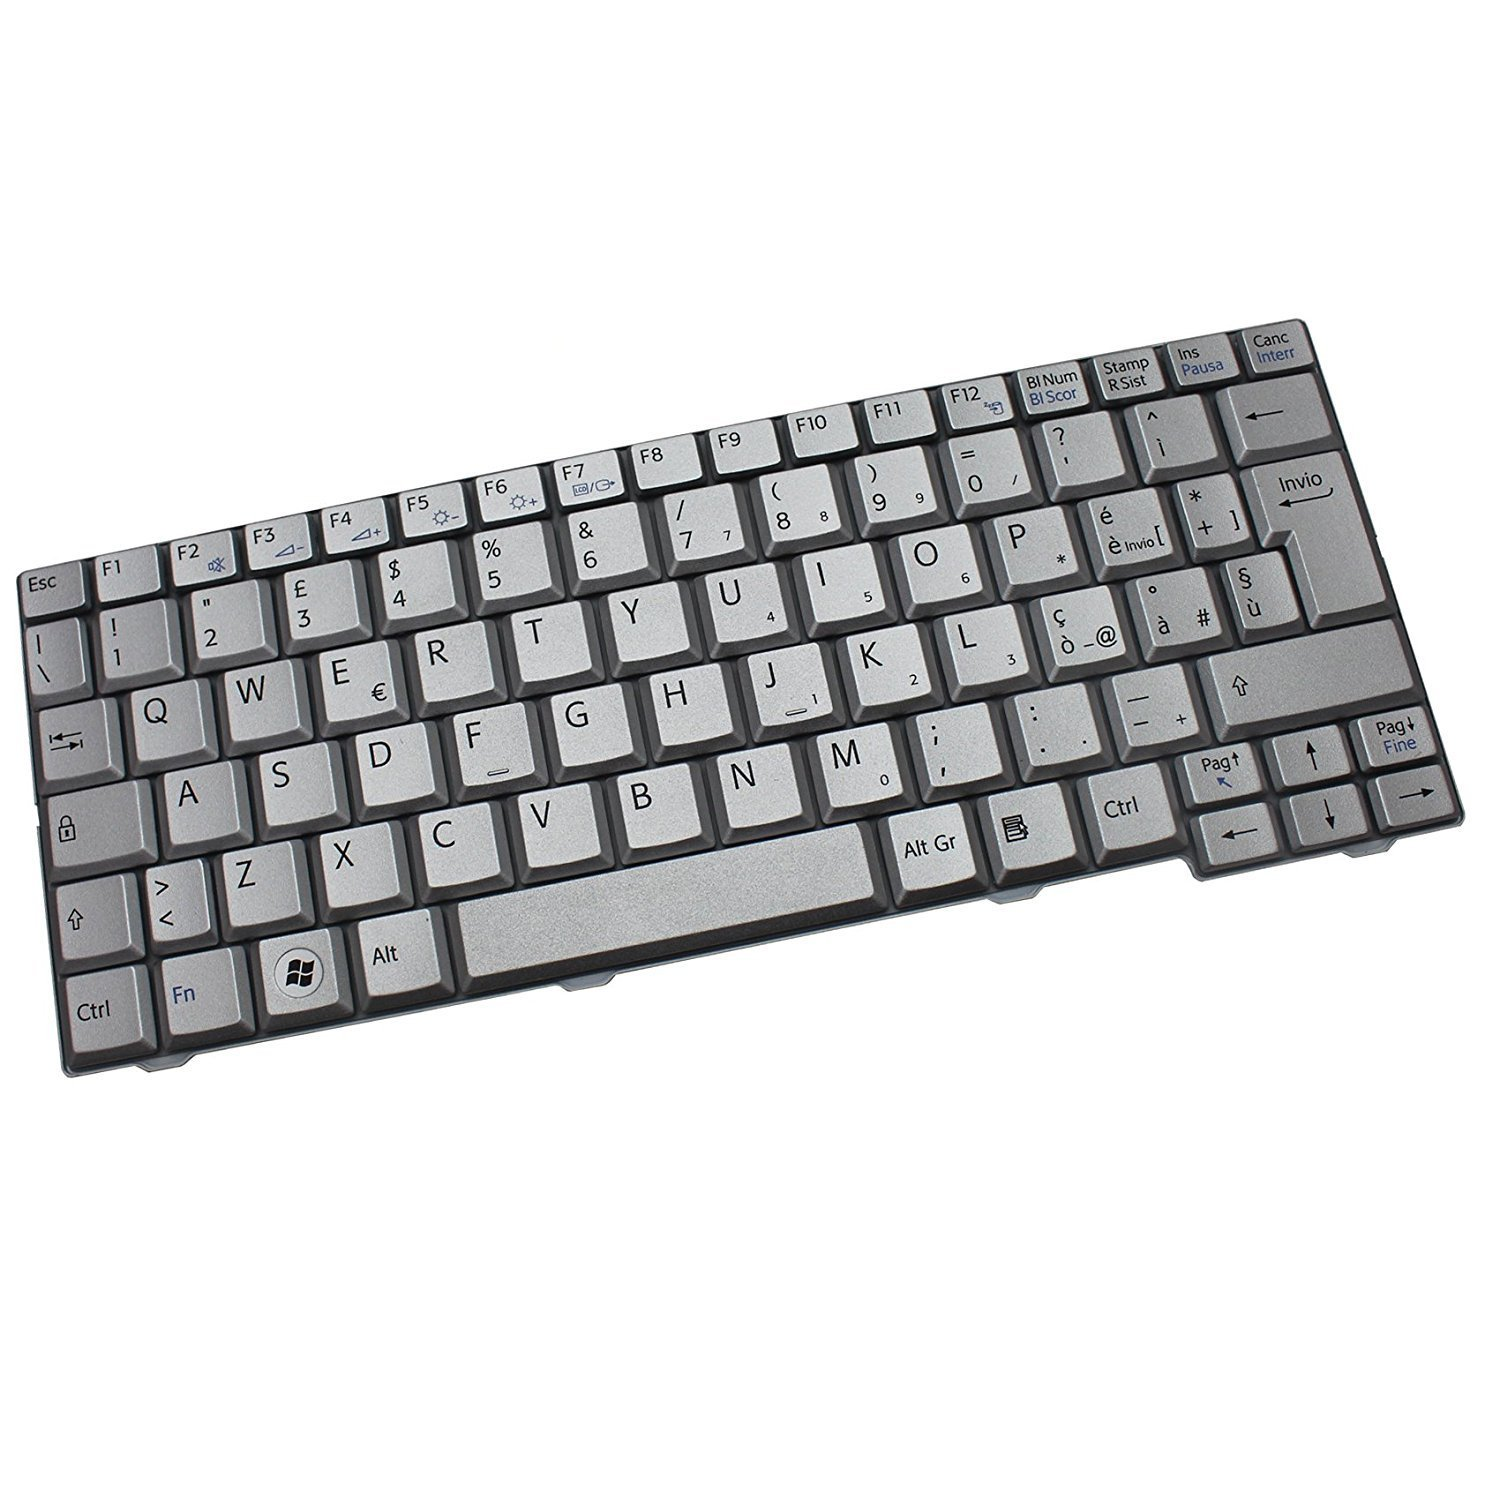 New Original Asus K70 K70IJ K51 Laptop US Keyboard 0KN0-EL1US02 04GNV91KUS00-2